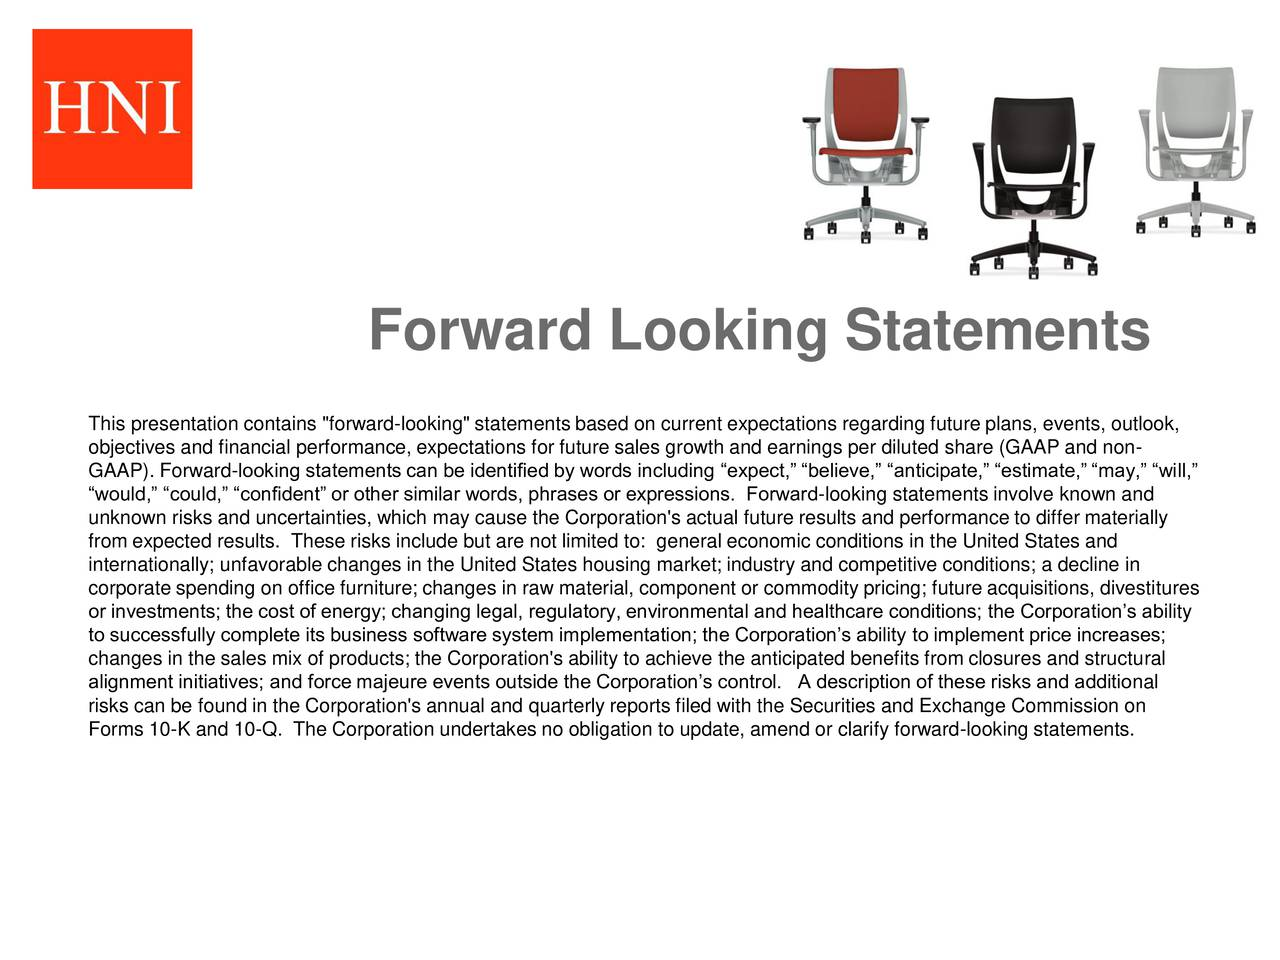 "This presentation contains ""forward-looking"" statements based on current expectations regarding future plans, events, outlook, objectives and financial performance, expectations for future sales growth and earnings per diluted share (GAAP and non- GAAP). Forward-looking statements can be identified by words including expect, believe, anticipate, estimate, may, will, would, could, confident or other similar words, phrases or expressions. Forward-looking statements involve known and unknown risks and uncertainties, which may cause the Corporation's actual future results and performance to differ materially from expected results. These risks include but are not limited to: general economic conditions in the United States and internationally; unfavorable changes in the United States housing market; industry and competitive conditions; a decline in corporate spending on office furniture; changes in raw material, component or commodity pricing; future acquisitions, divestitures or investments; the cost of energy; changing legal, regulatory, environmental and healthcare conditions; the Corporations ability to successfully complete its business software system implementation; the Corporations ability to implement price increases; changes in the sales mix of products; the Corporation's ability to achieve the anticipated benefits from closures and structural alignment initiatives; and force majeure events outside the Corporations control. A description of these risks and additional risks can be found in the Corporation's annual and quarterly reports filed with the Securities and Exchange Commission on Forms 10-K and 10-Q. The Corporation undertakes no obligation to update, amend or clarify forward-looking statements."